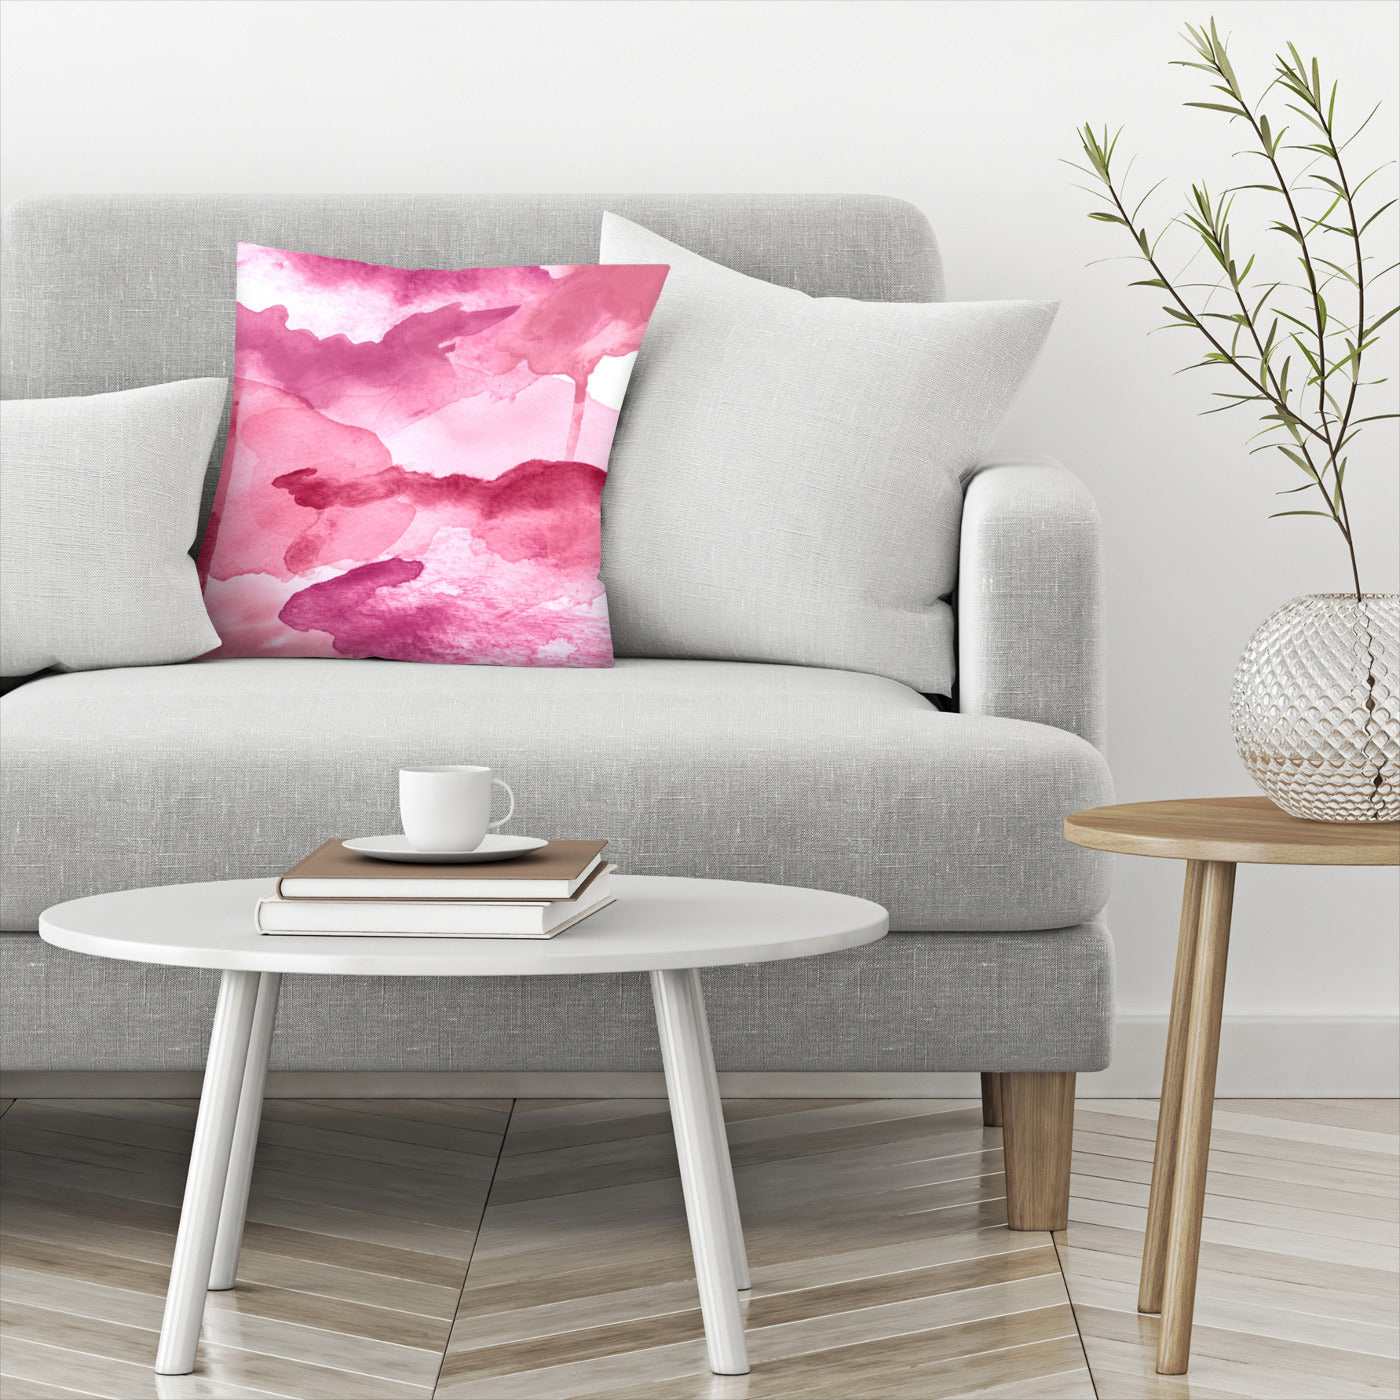 Morning Joy Modern Pink by Amy Brinkman Decorative Pillow - Decorative Pillow - Americanflat